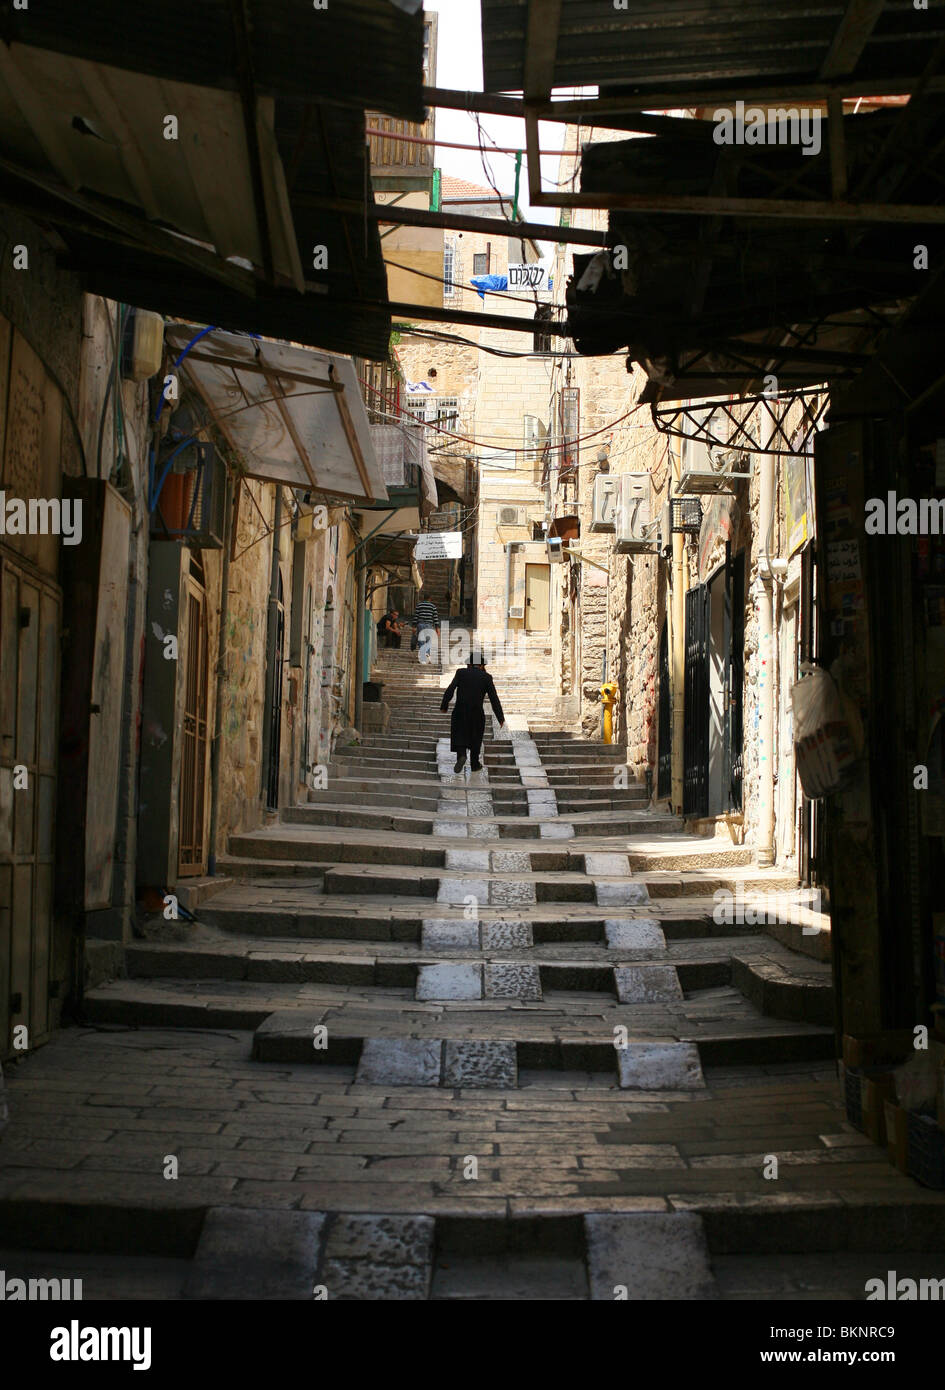 Orthodox Jew in the Old City of Jerusalem, Israel - Stock Image